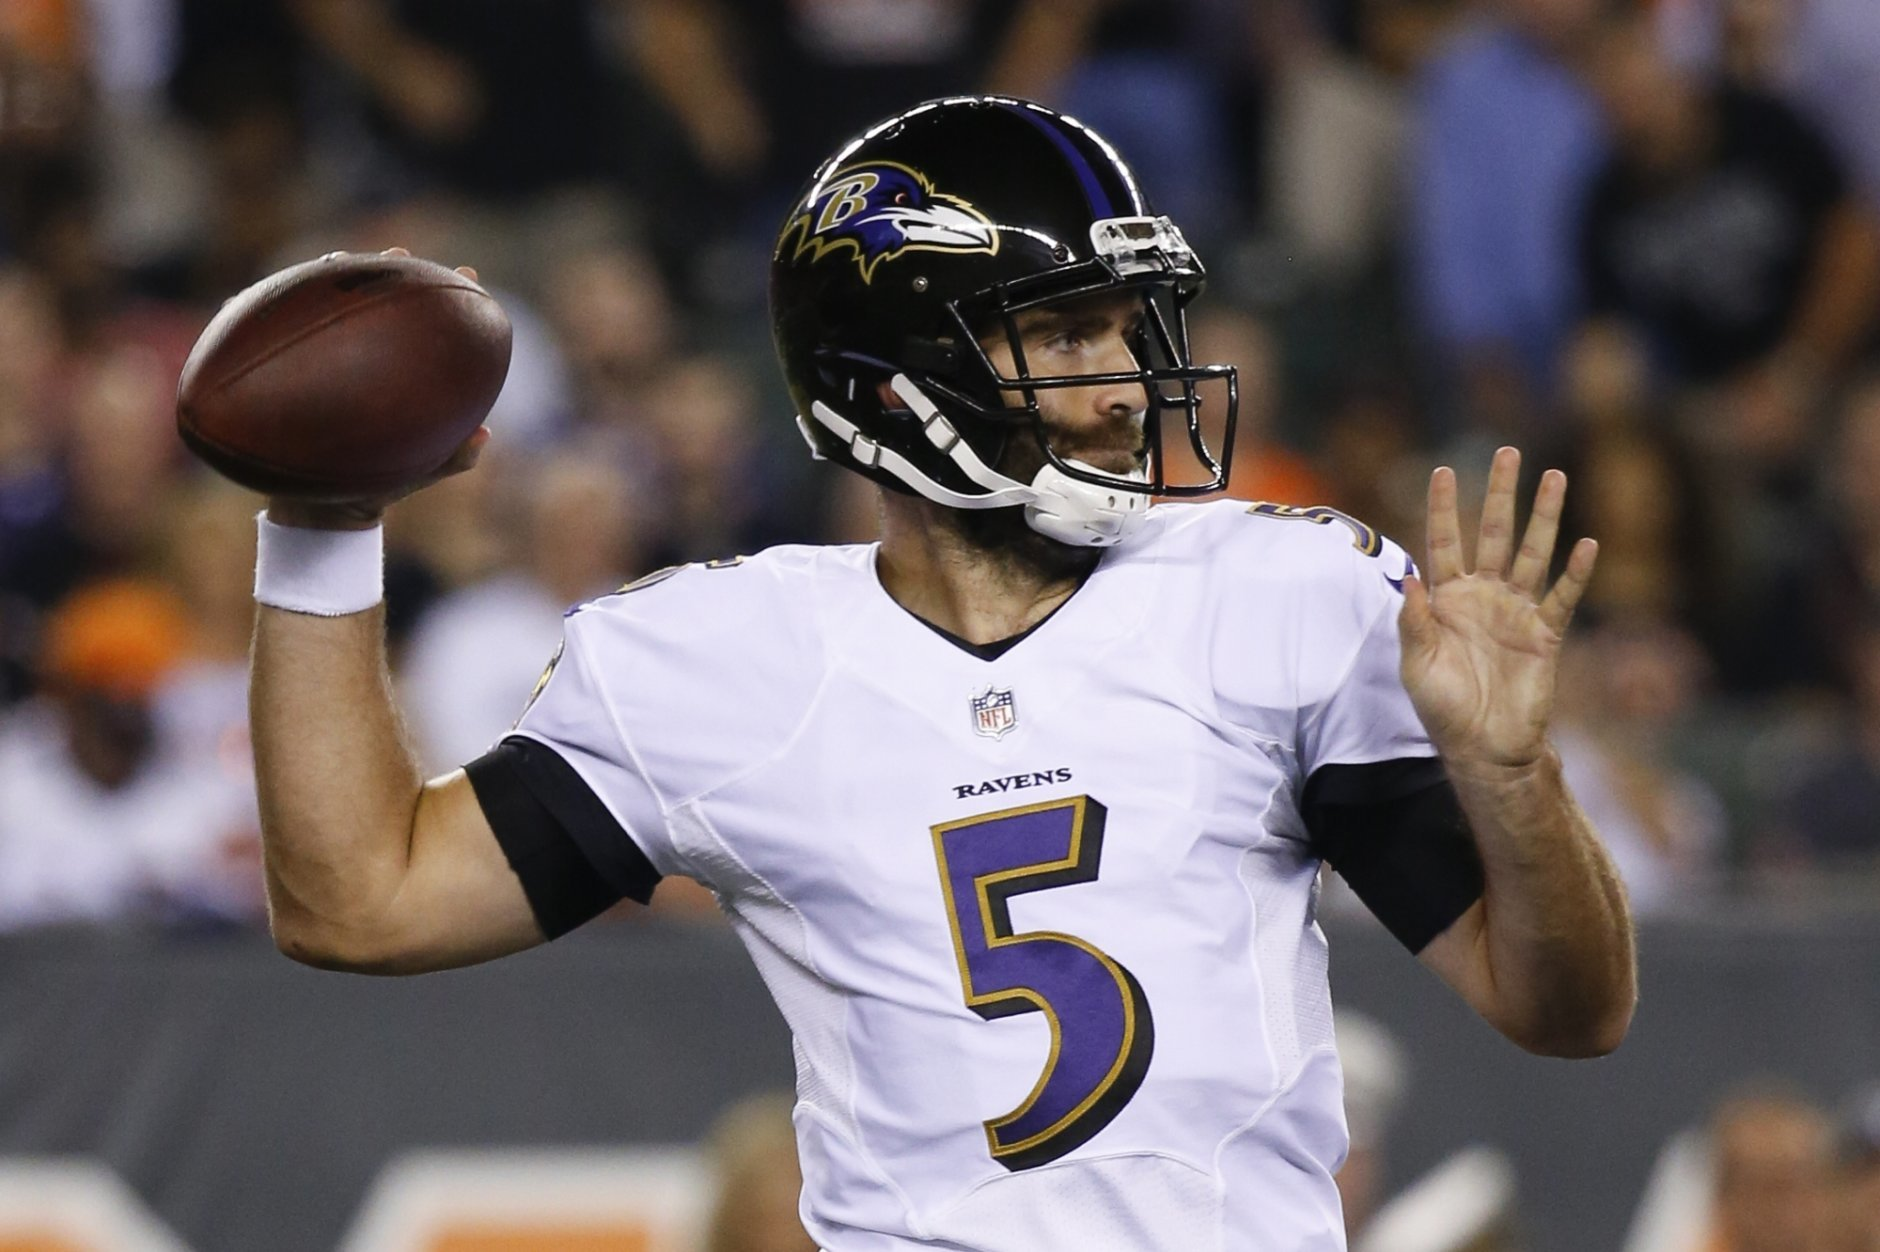 Baltimore Ravens quarterback Joe Flacco throws in the first half of an NFL football game, Thursday, Sept. 13, 2018, in Cincinnati. (AP Photo/Frank Victores)